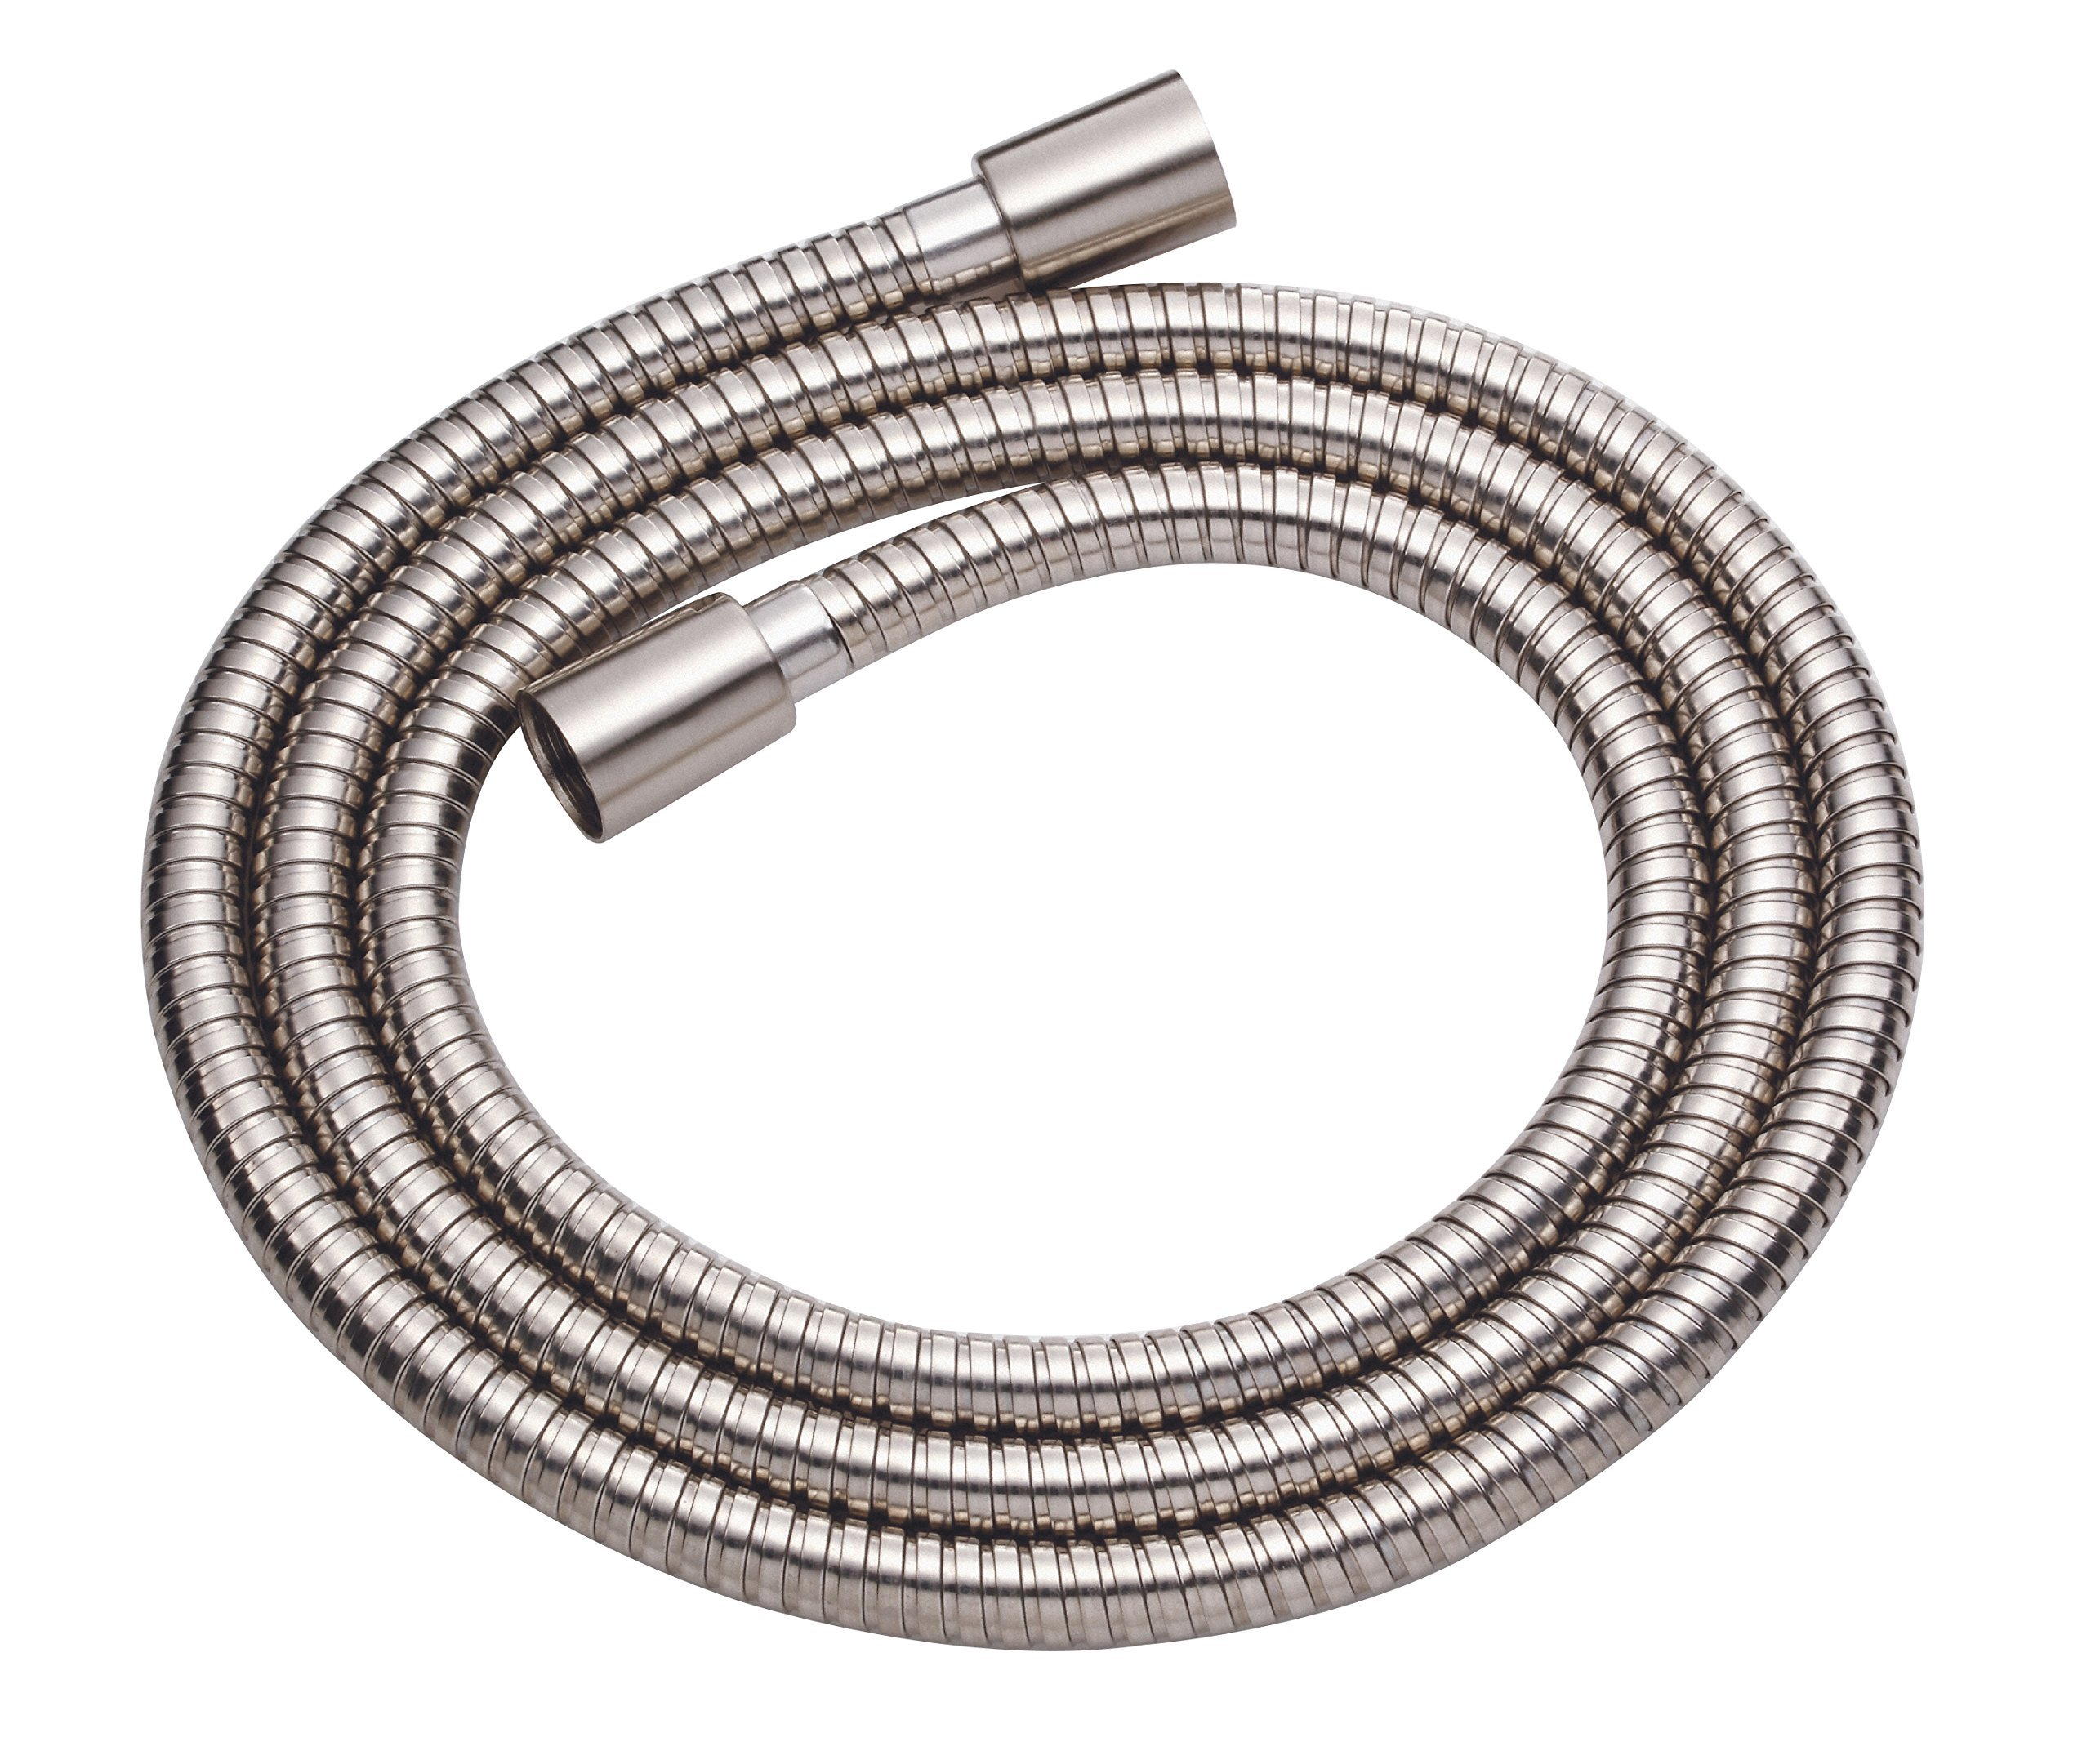 Danze D469020BN Metal Interlock Shower Hose with Brass Conical Nuts, 72-Inch, Brushed Nickel by Danze